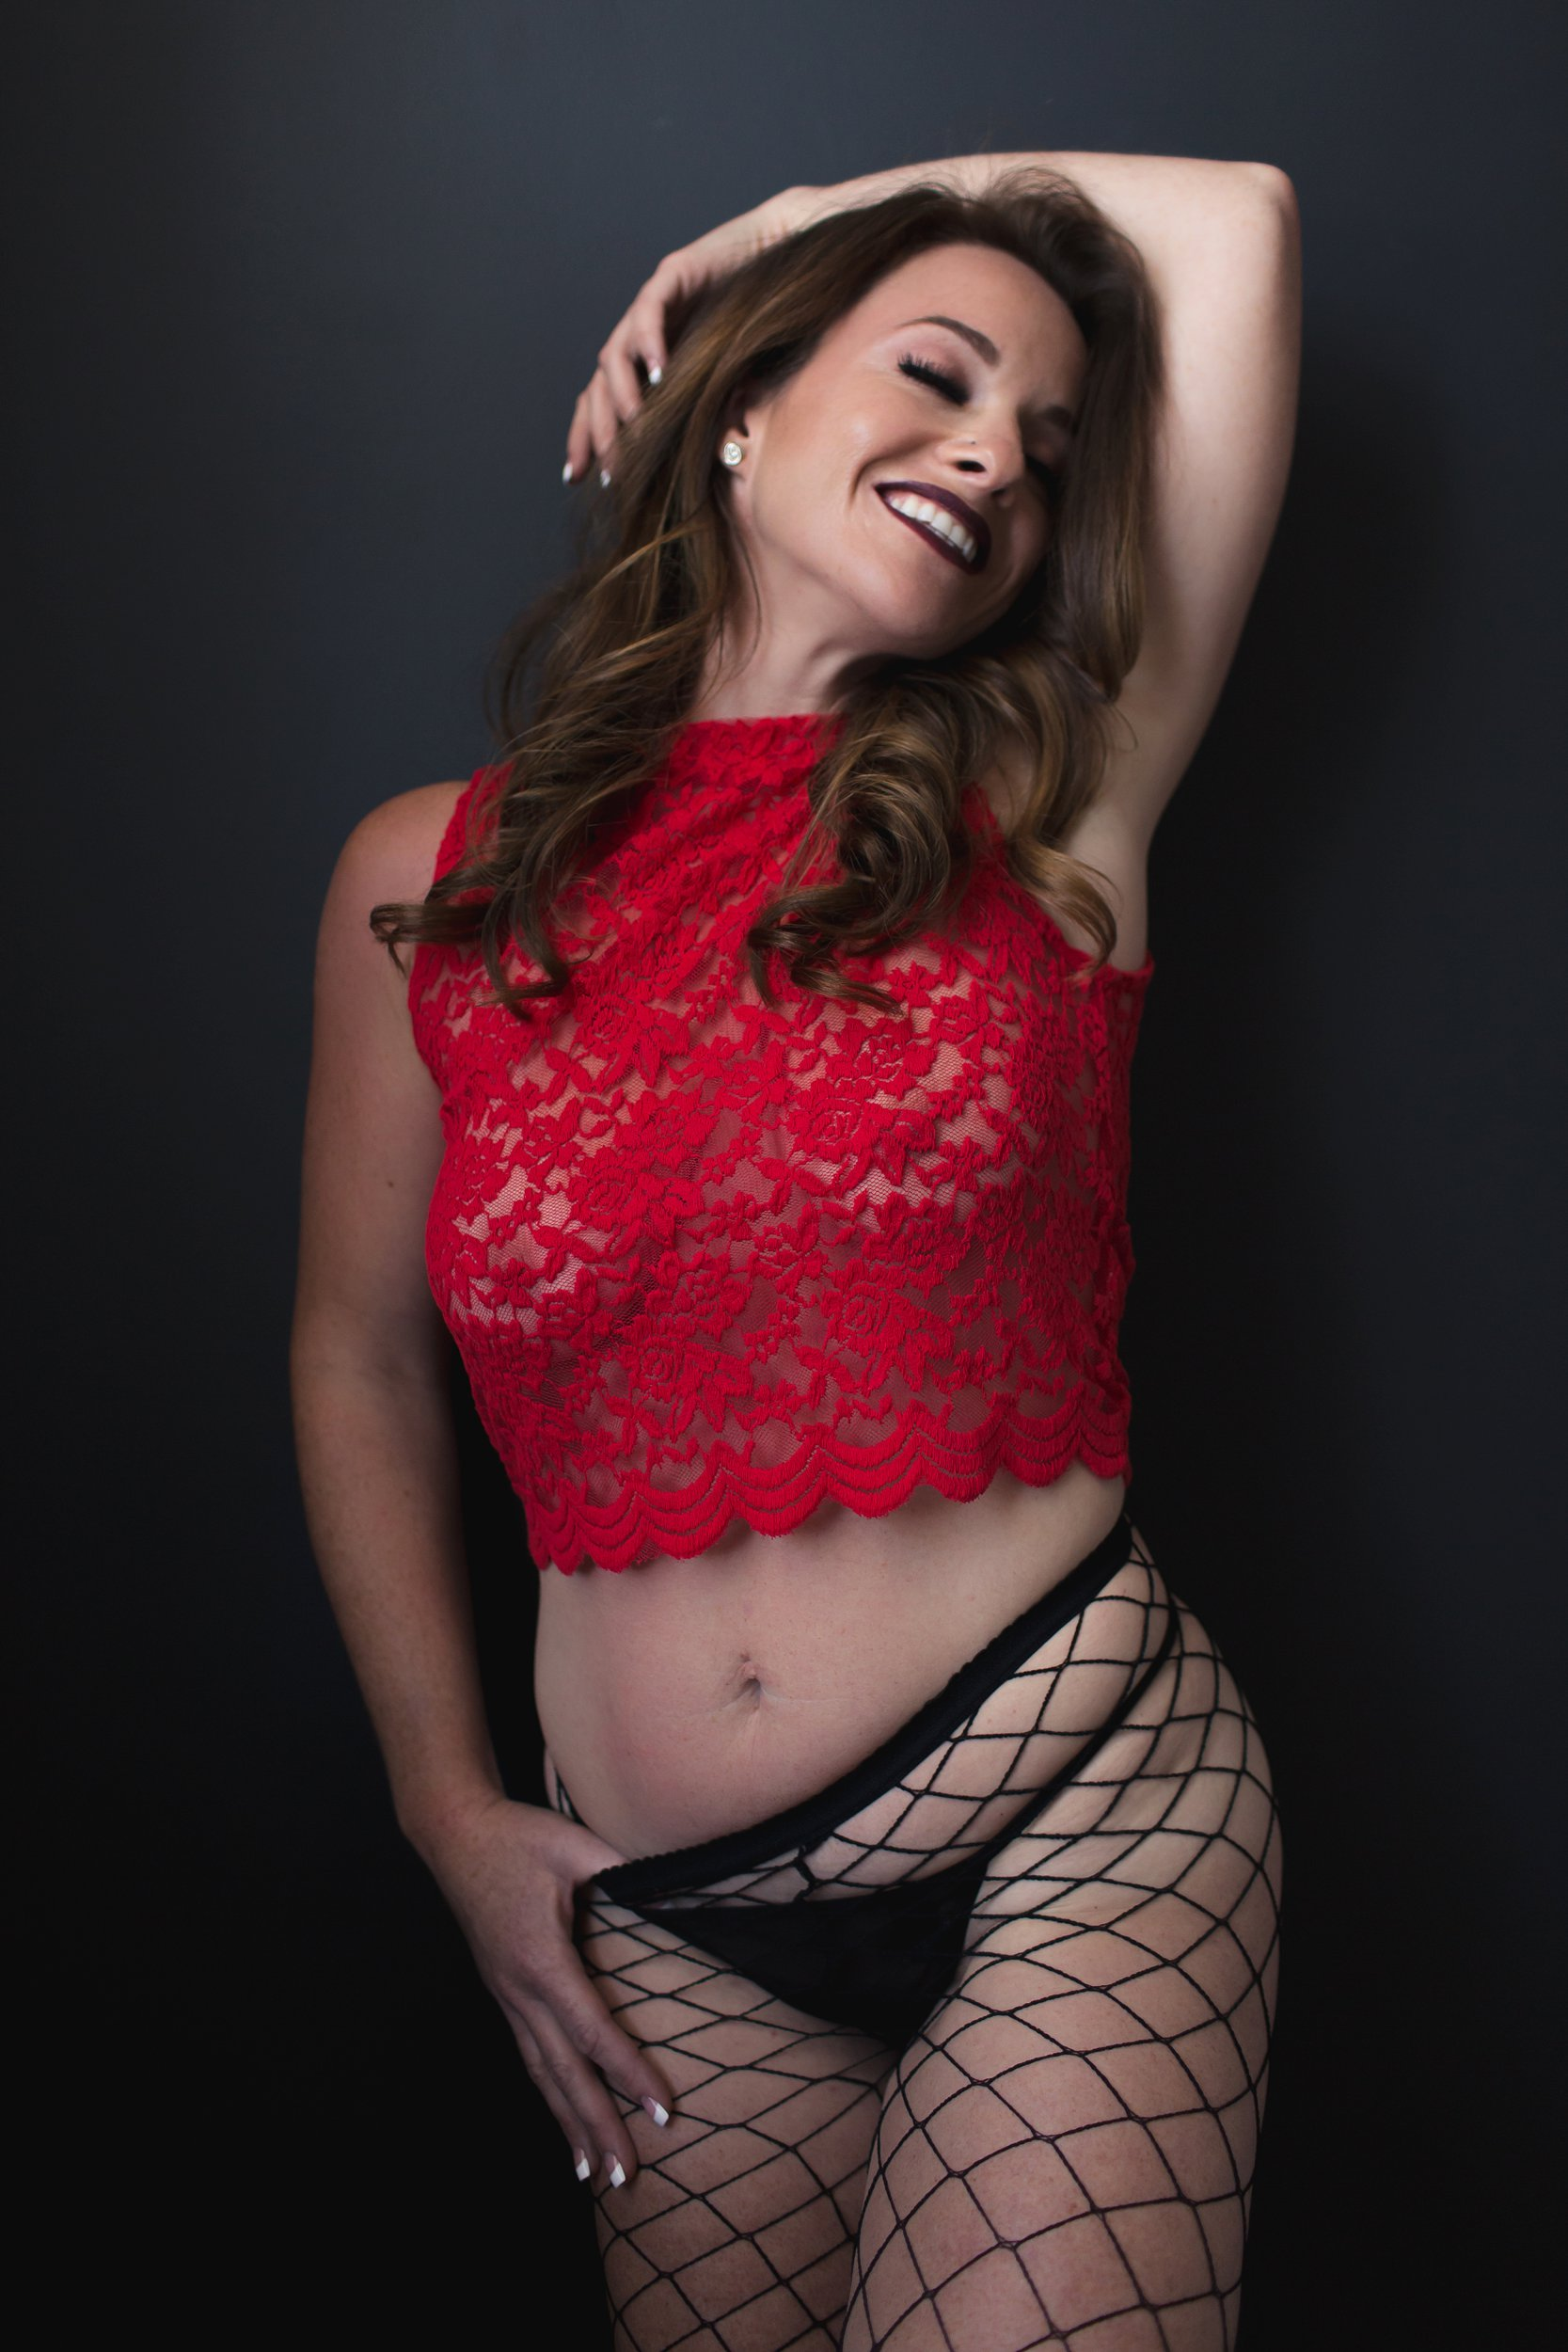 Woman in red lace top and black fishnet stockings smiling